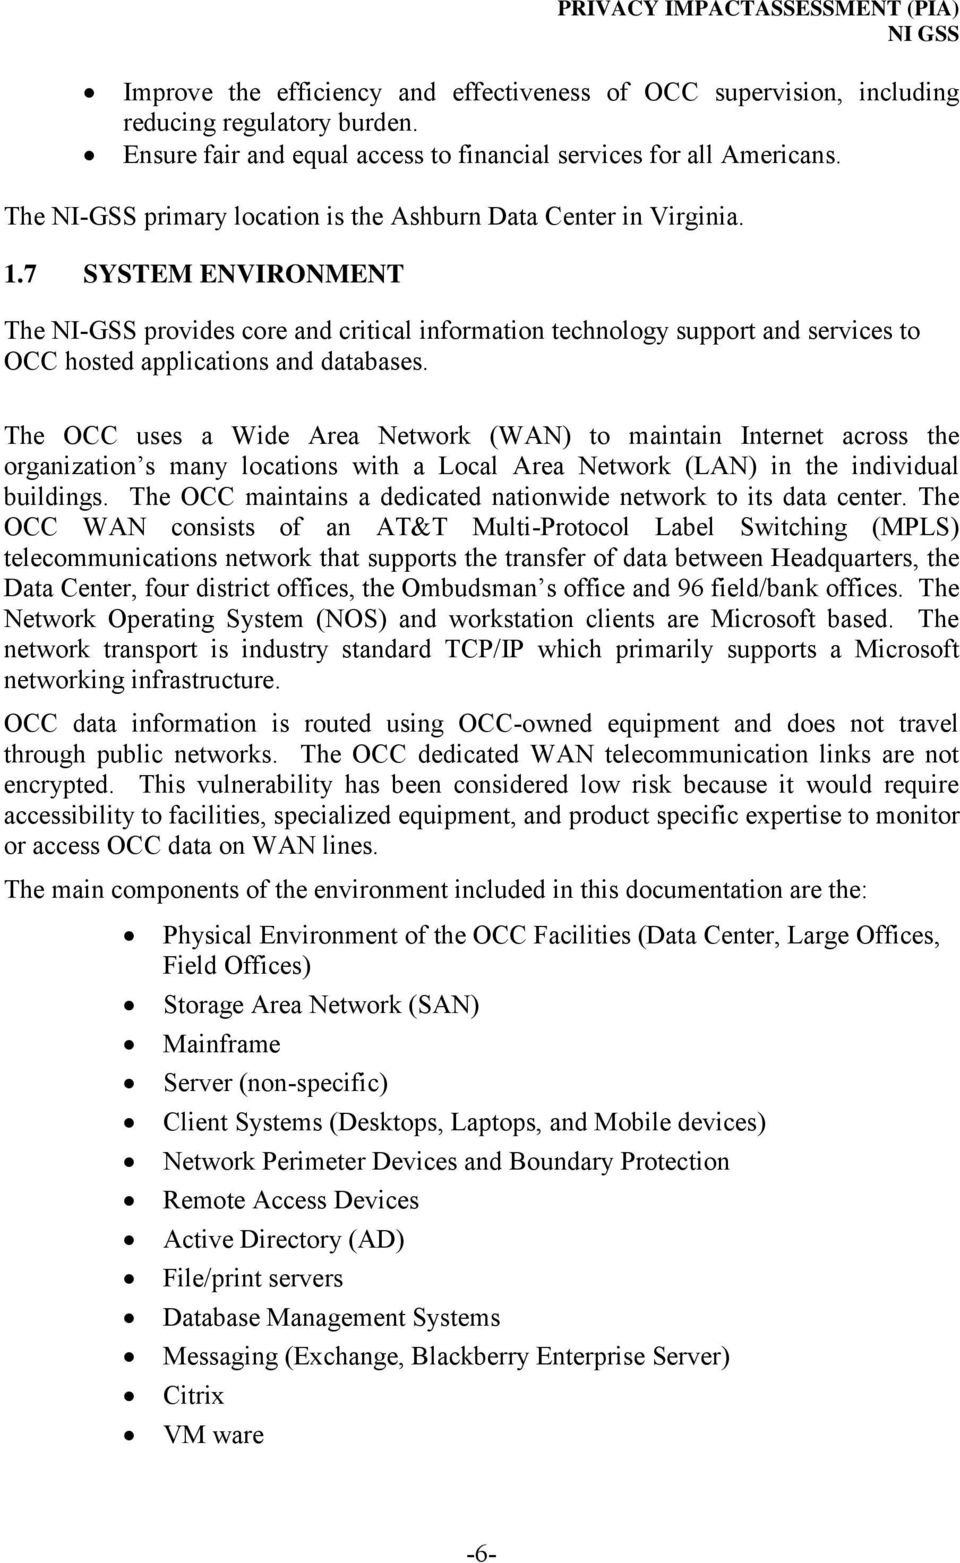 7 SYSTEM ENVIRONMENT The NI-GSS provides core and critical information technology support and services to OCC hosted applications and databases.